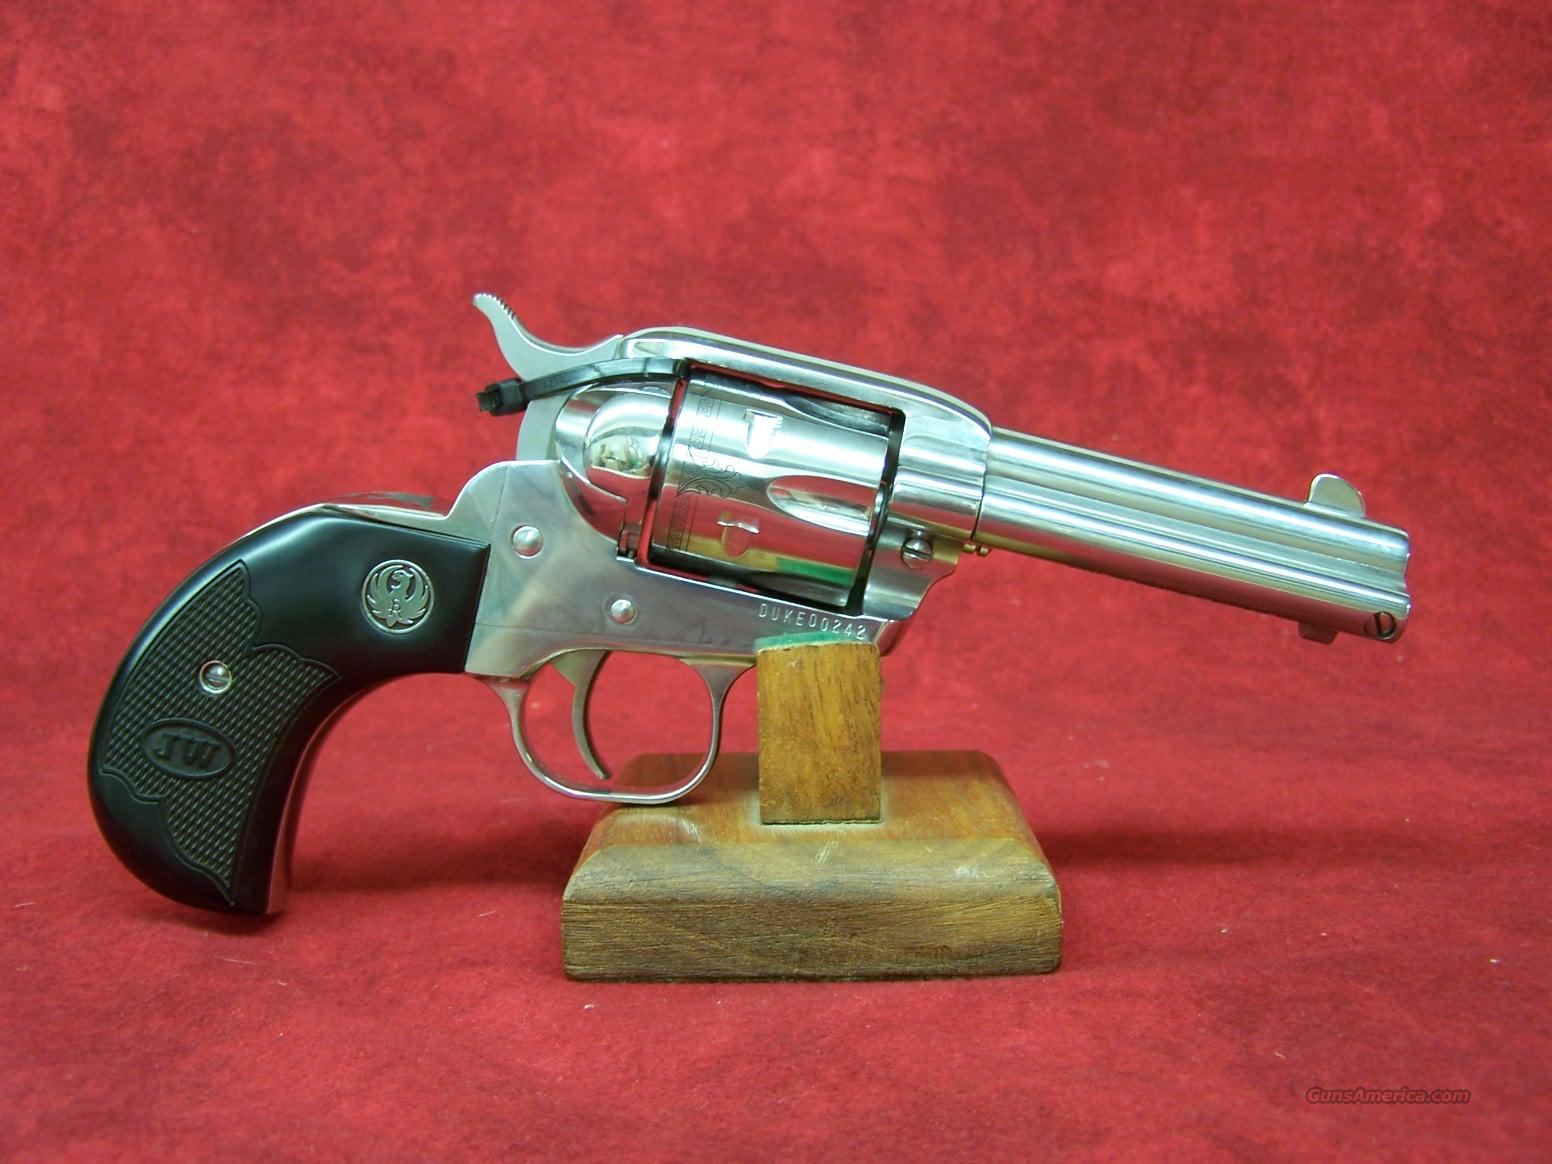 "Ruger Single Six John Wayne Duke .32 H&R Mag 3.75"" barrel(6536)  Guns > Pistols > Ruger Single Action Revolvers > Single Six Type"